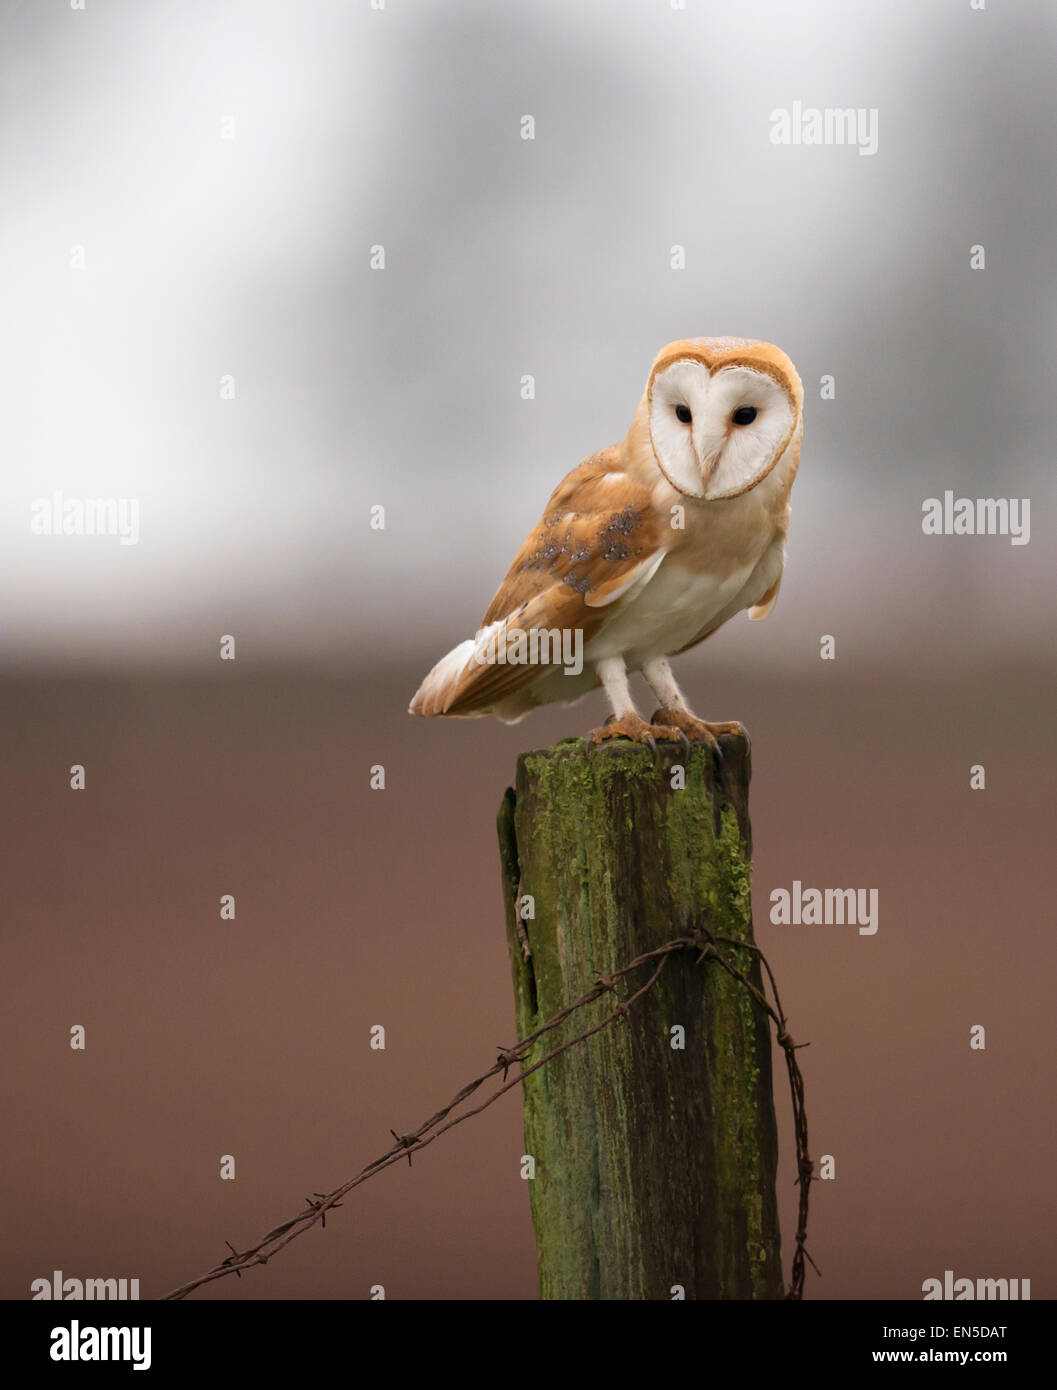 Wild Barn Owl Tyto Alba perched on wooden fence post, Gloucestershire - Stock Image